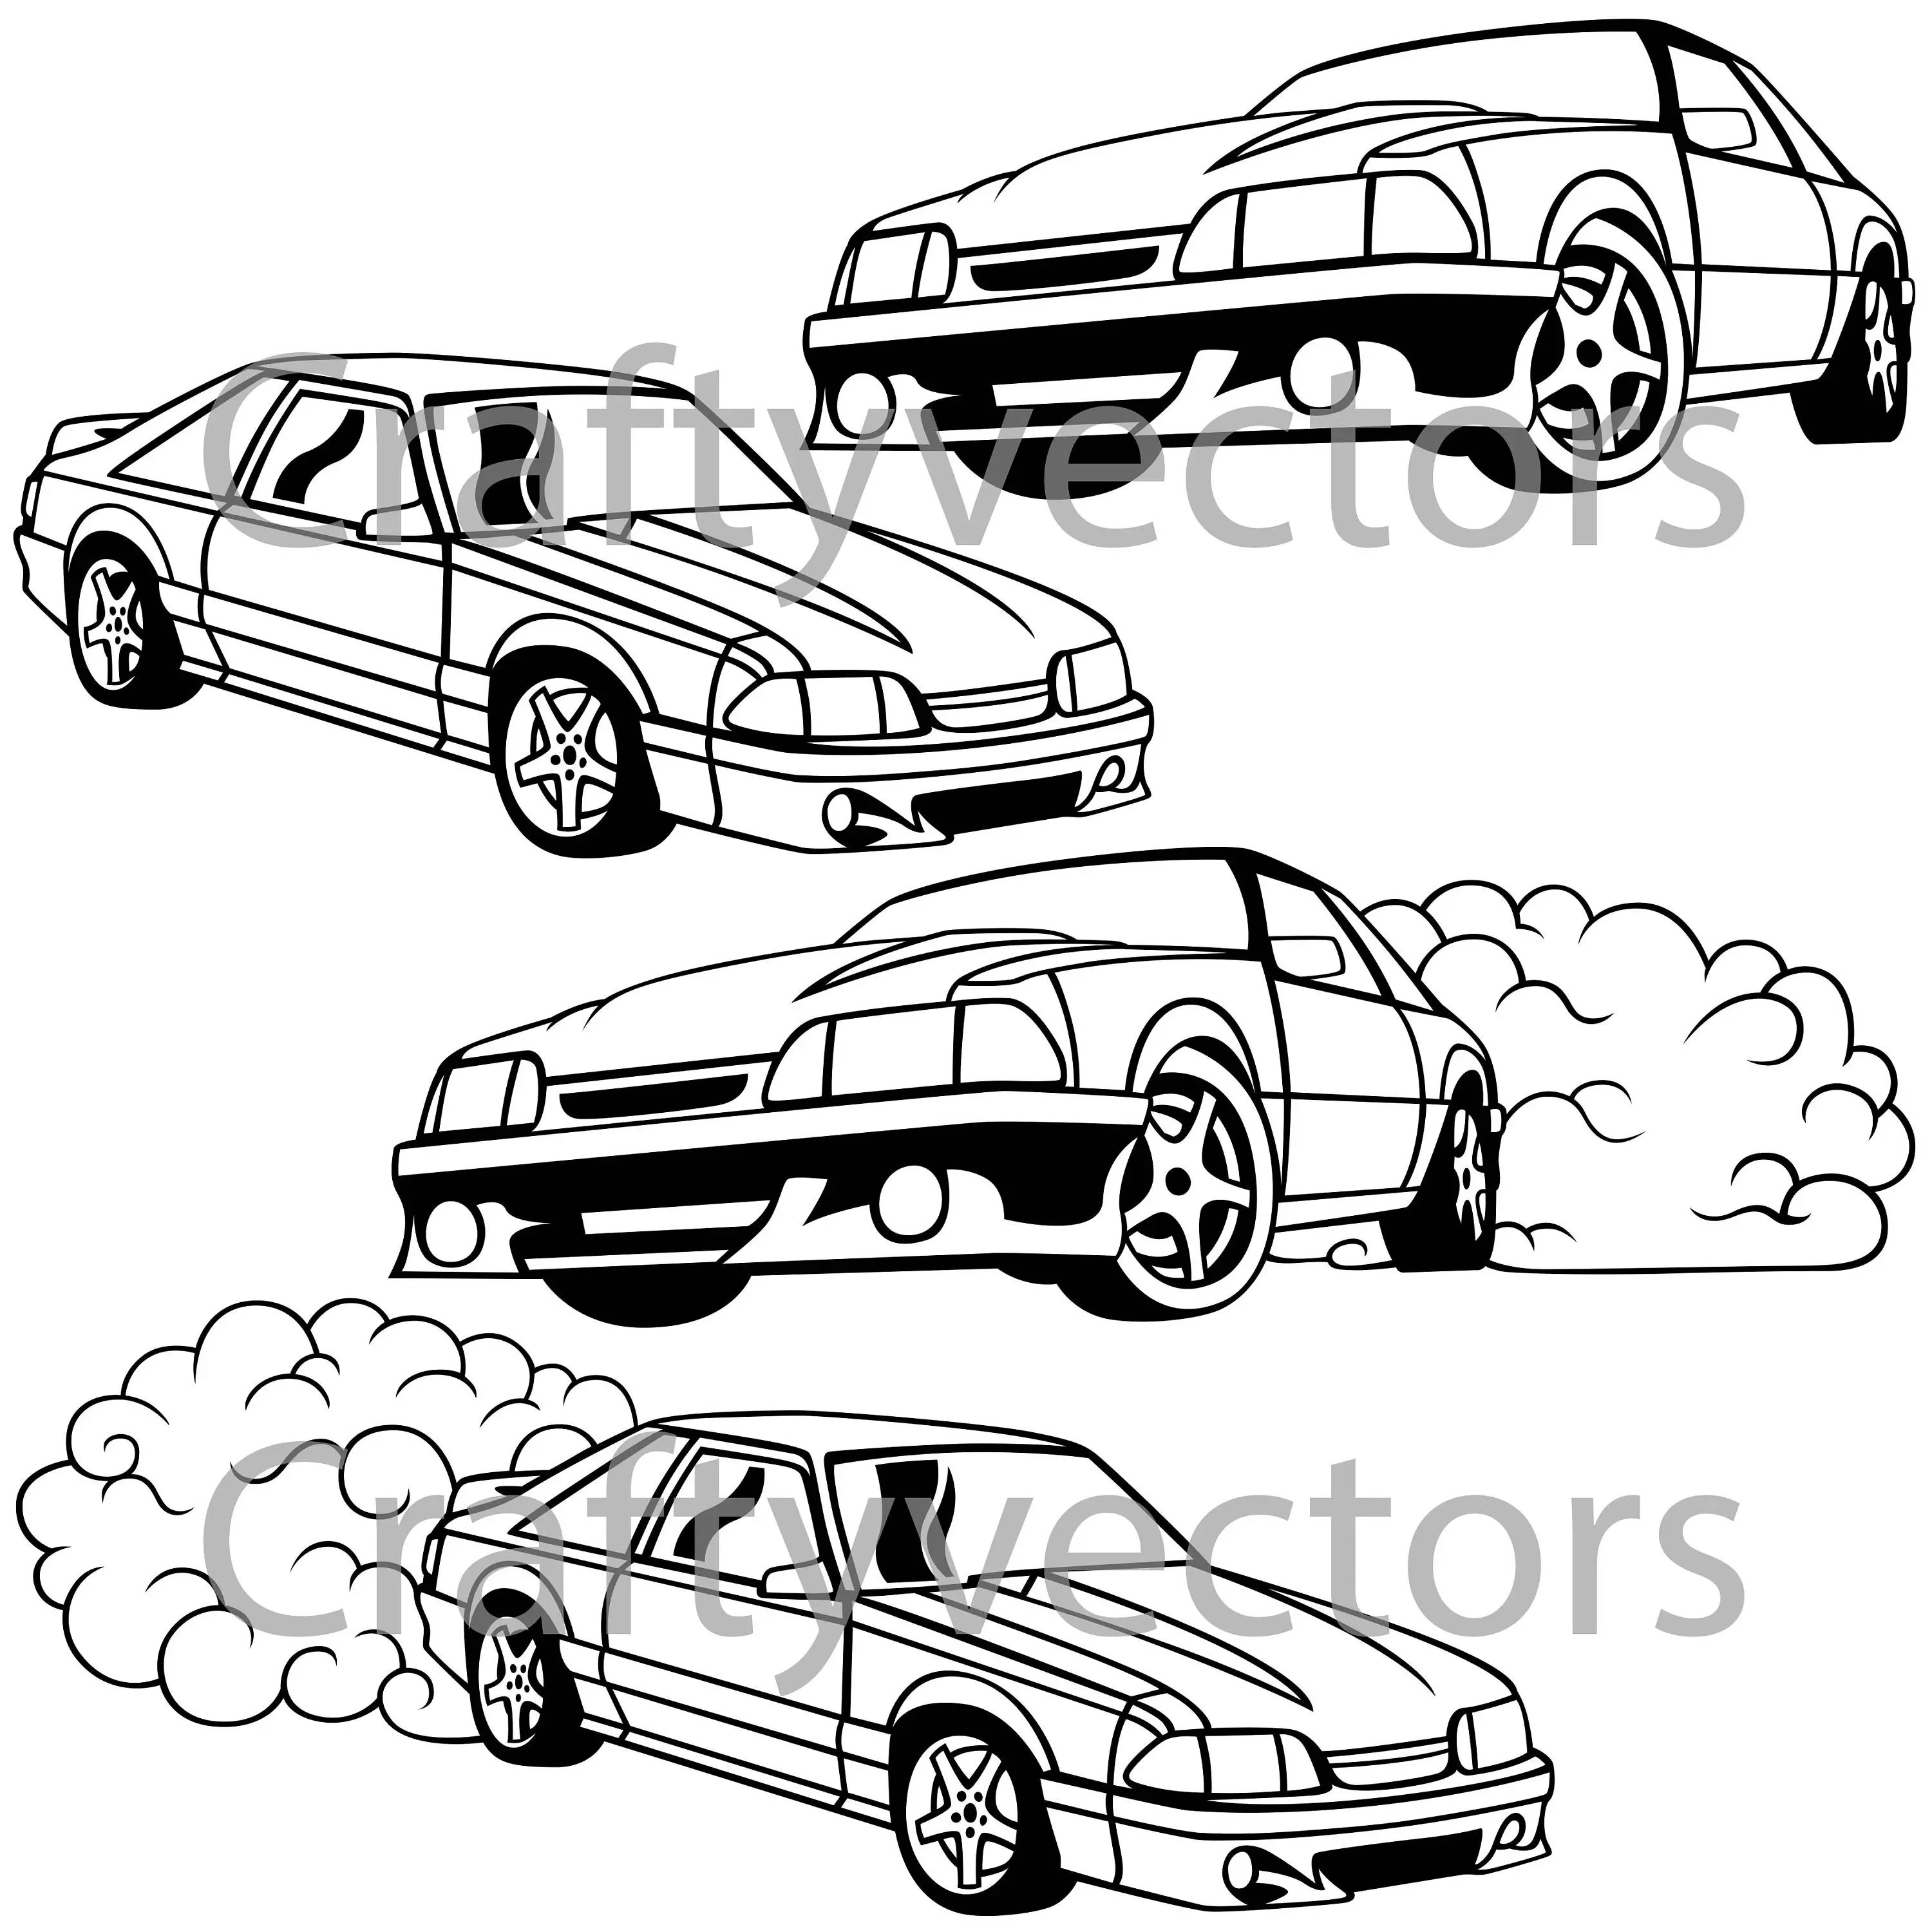 Ford Mustang Fox Body vector SVG cut file